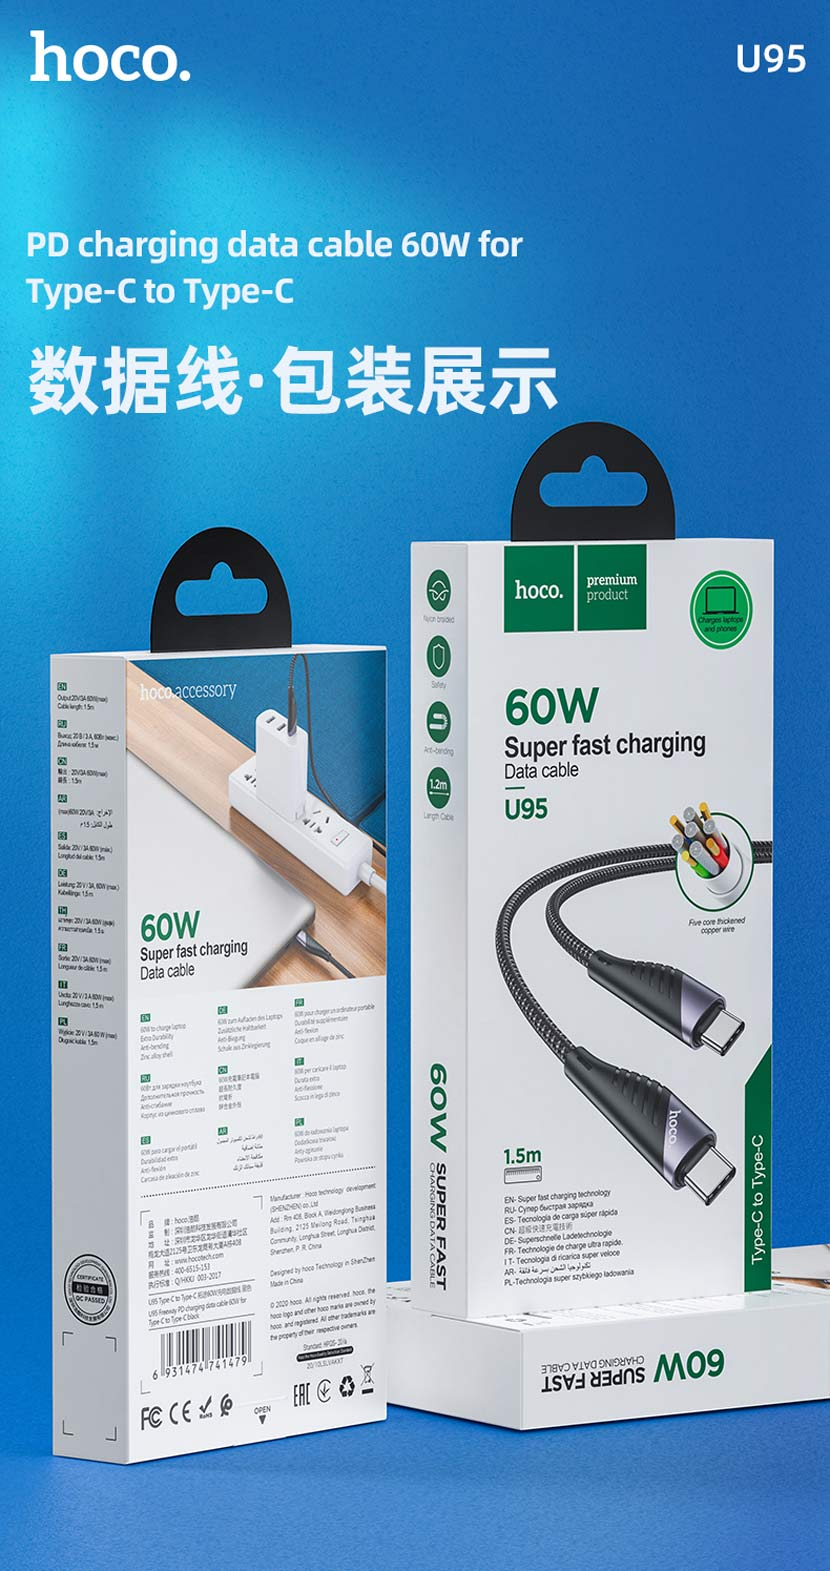 hoco news u95 freeway charging data cable 60w type c to type c package cn